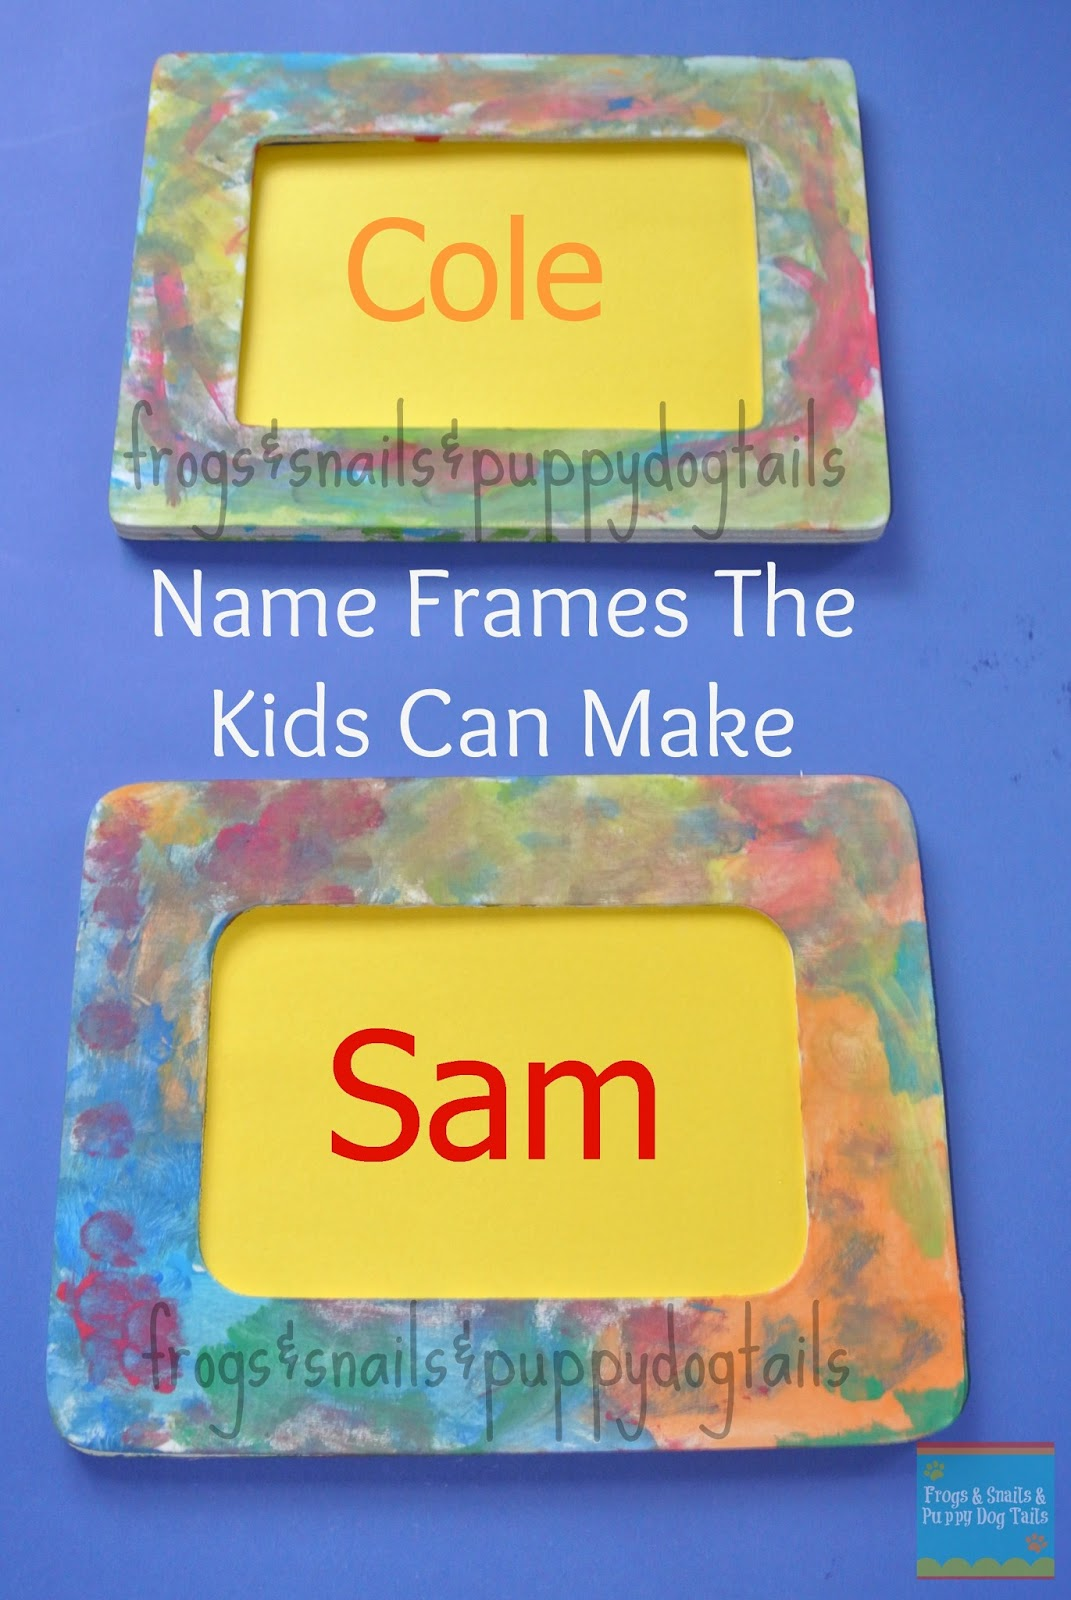 Name Frames- Fun To Make & {help kids learn their names} - FSPDT